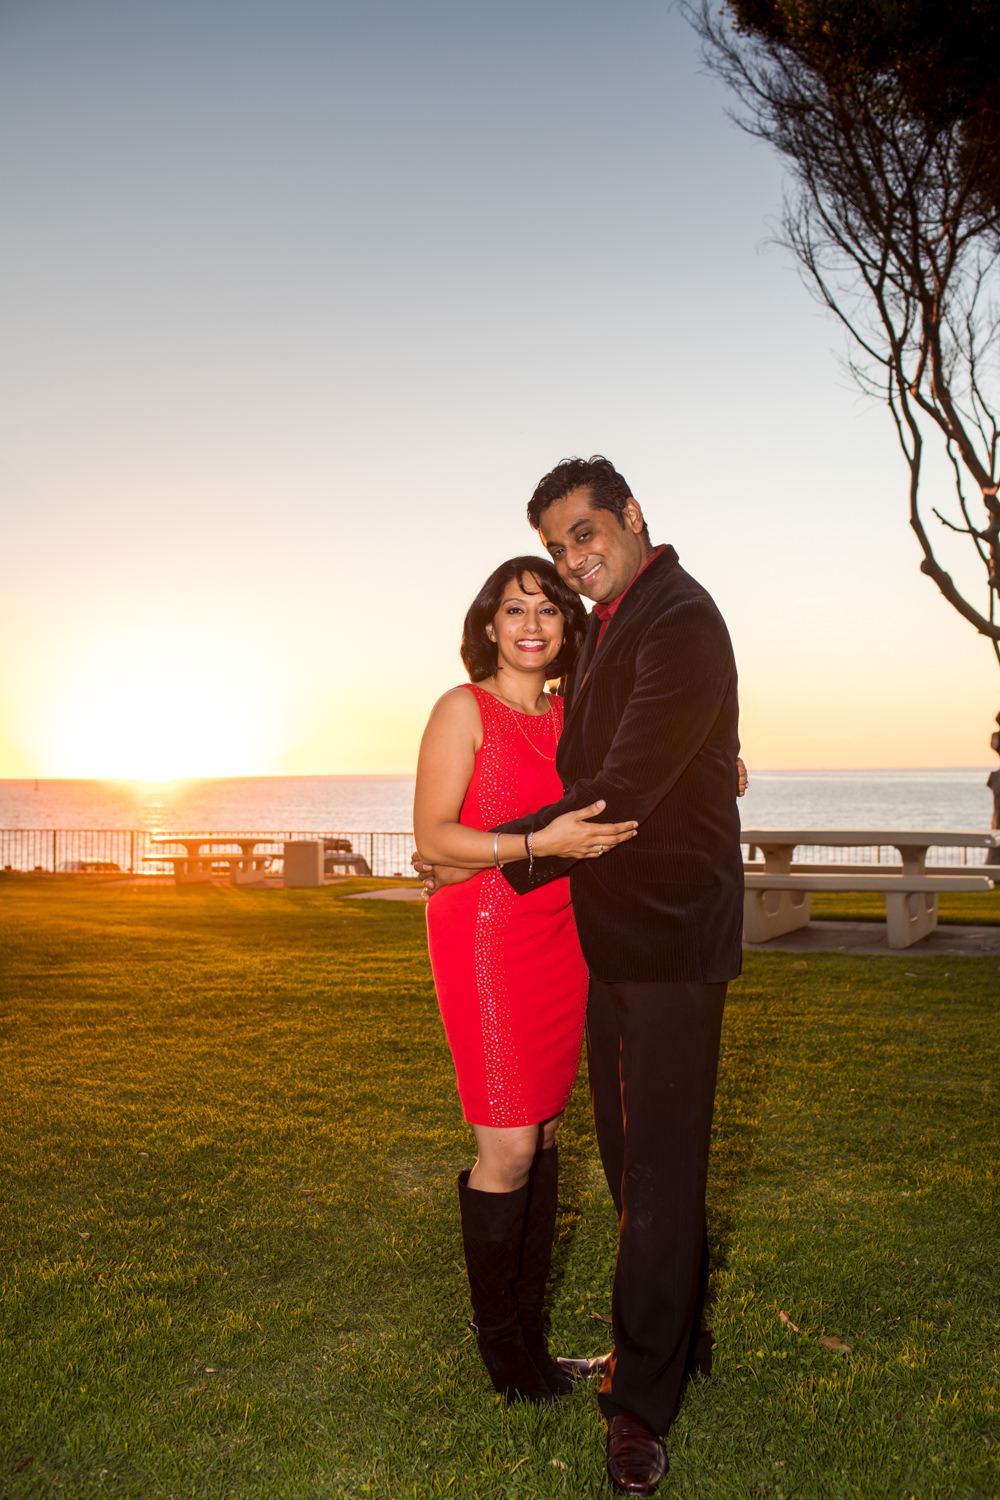 redondobeach-photographer-portraits-family-park-outdoor-sunset-_0013